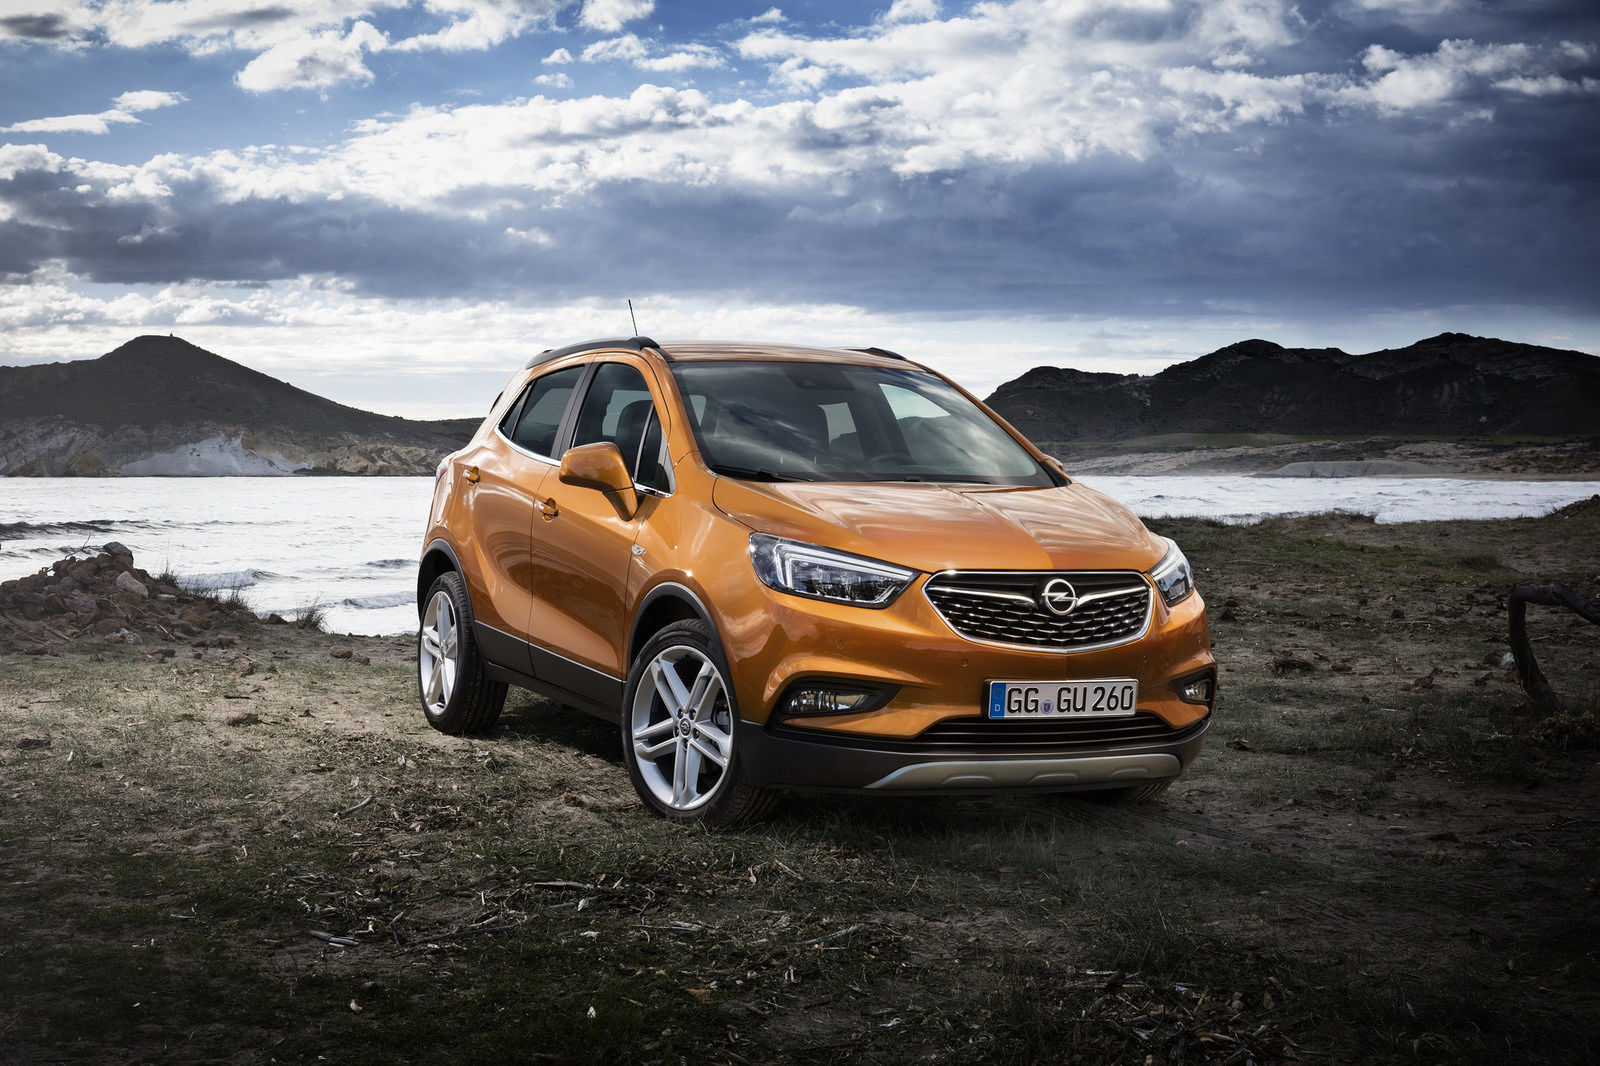 NOU OPEL MOKKA. Creat per superar expectatives